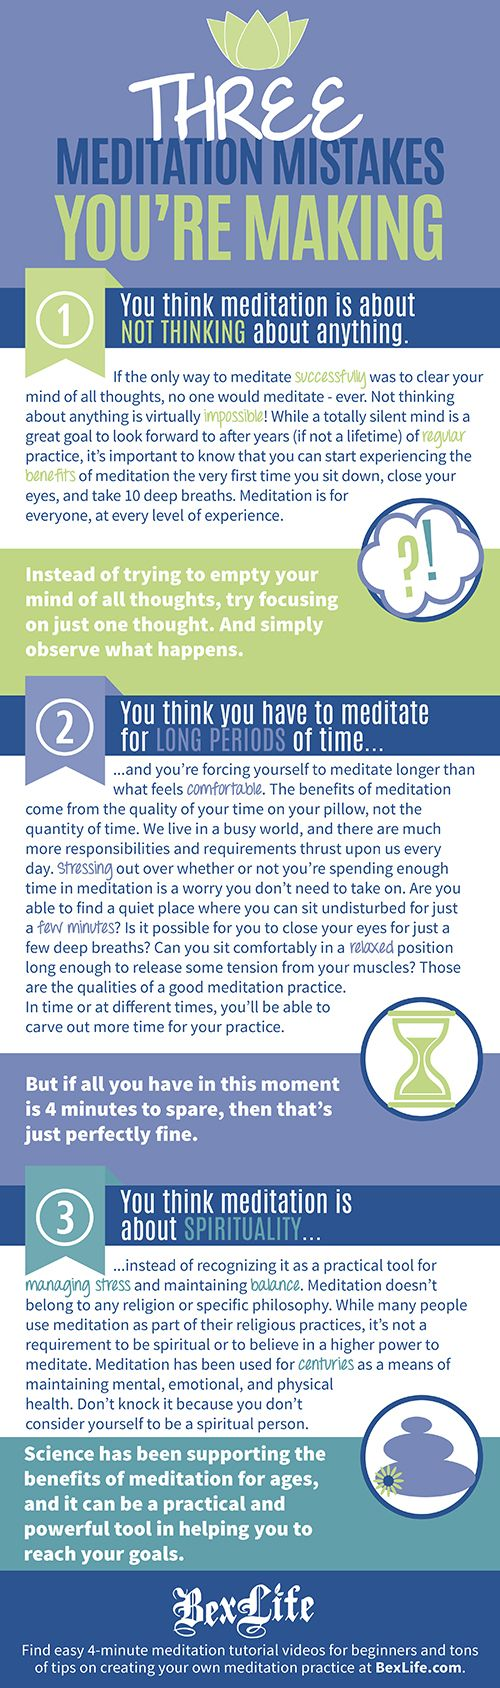 Meditation is more popular than ever, making its way into the mainstream more and more every day.  However, with its growing popularity comes pervasive and often discouraging myths surrounding what meditation is and how to practice it correctly.  I am here to tell you that any barriers between you and having a sustainable and valuable meditation practice are false. Meditation is for YOU!: